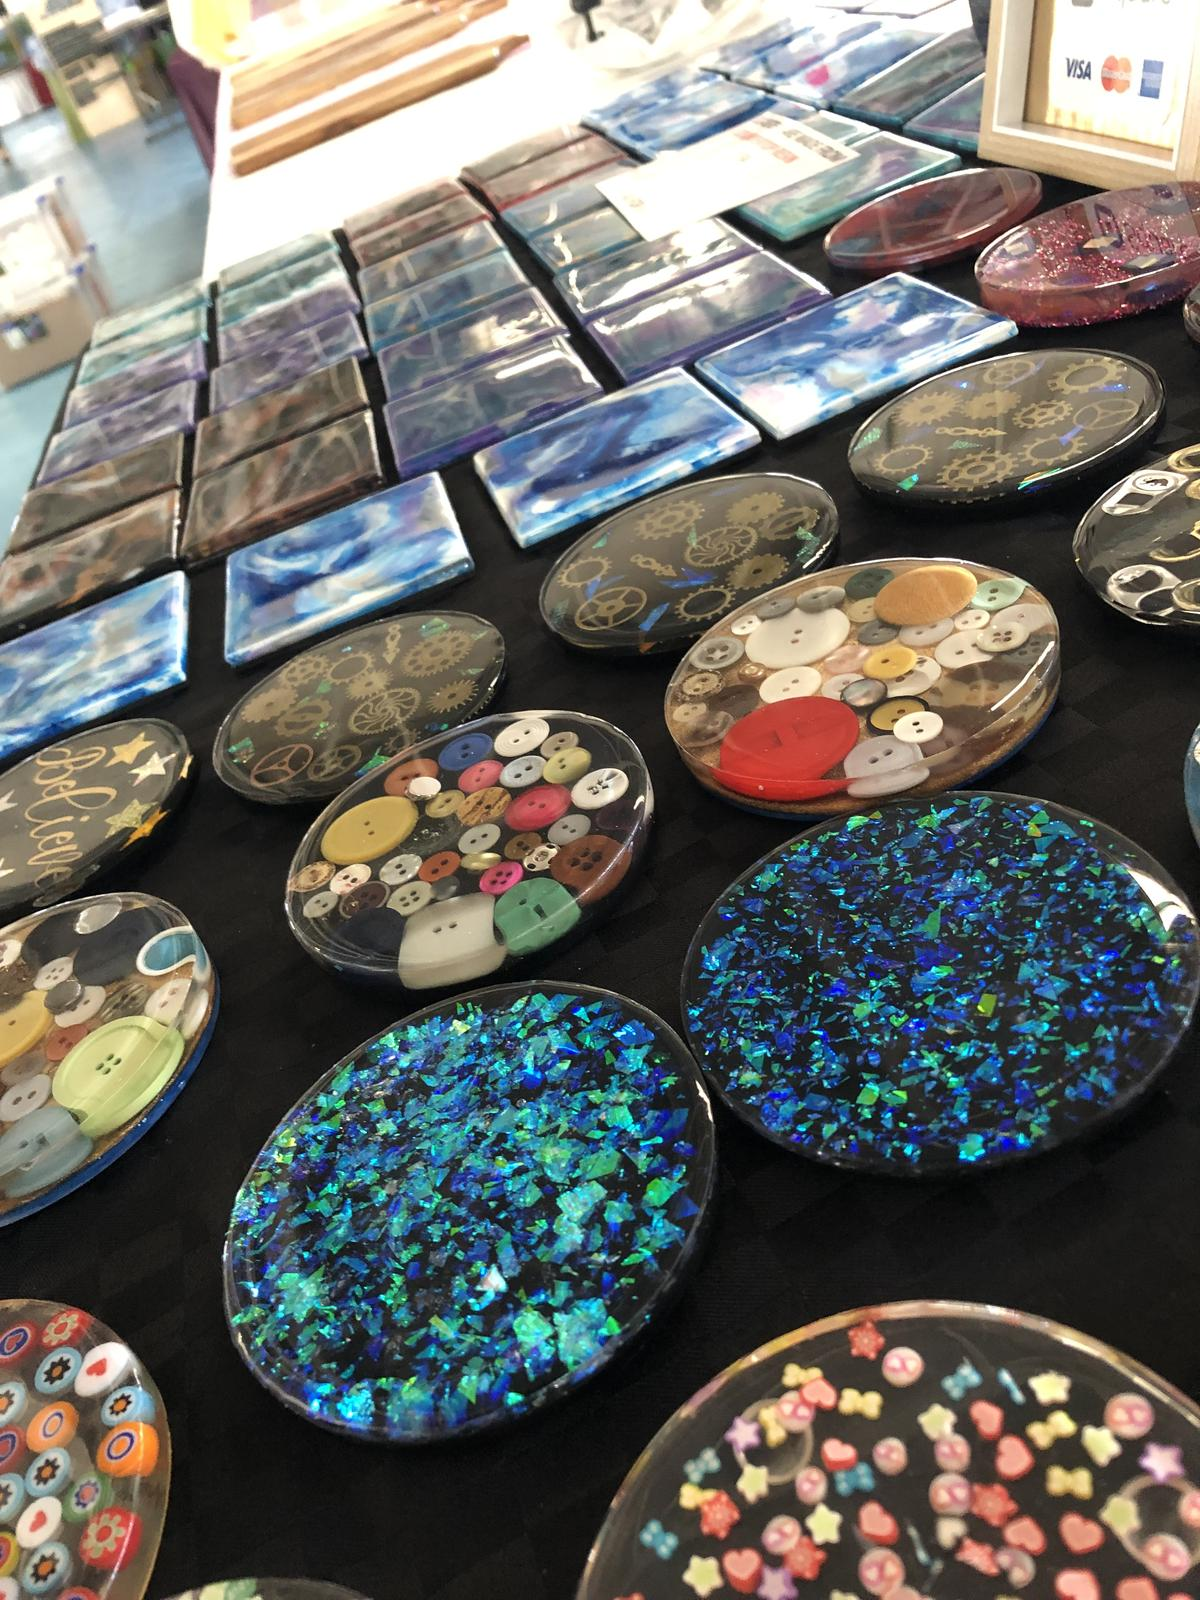 Some of the round and square coasters i sell. No 2 coasters are exactly alike so